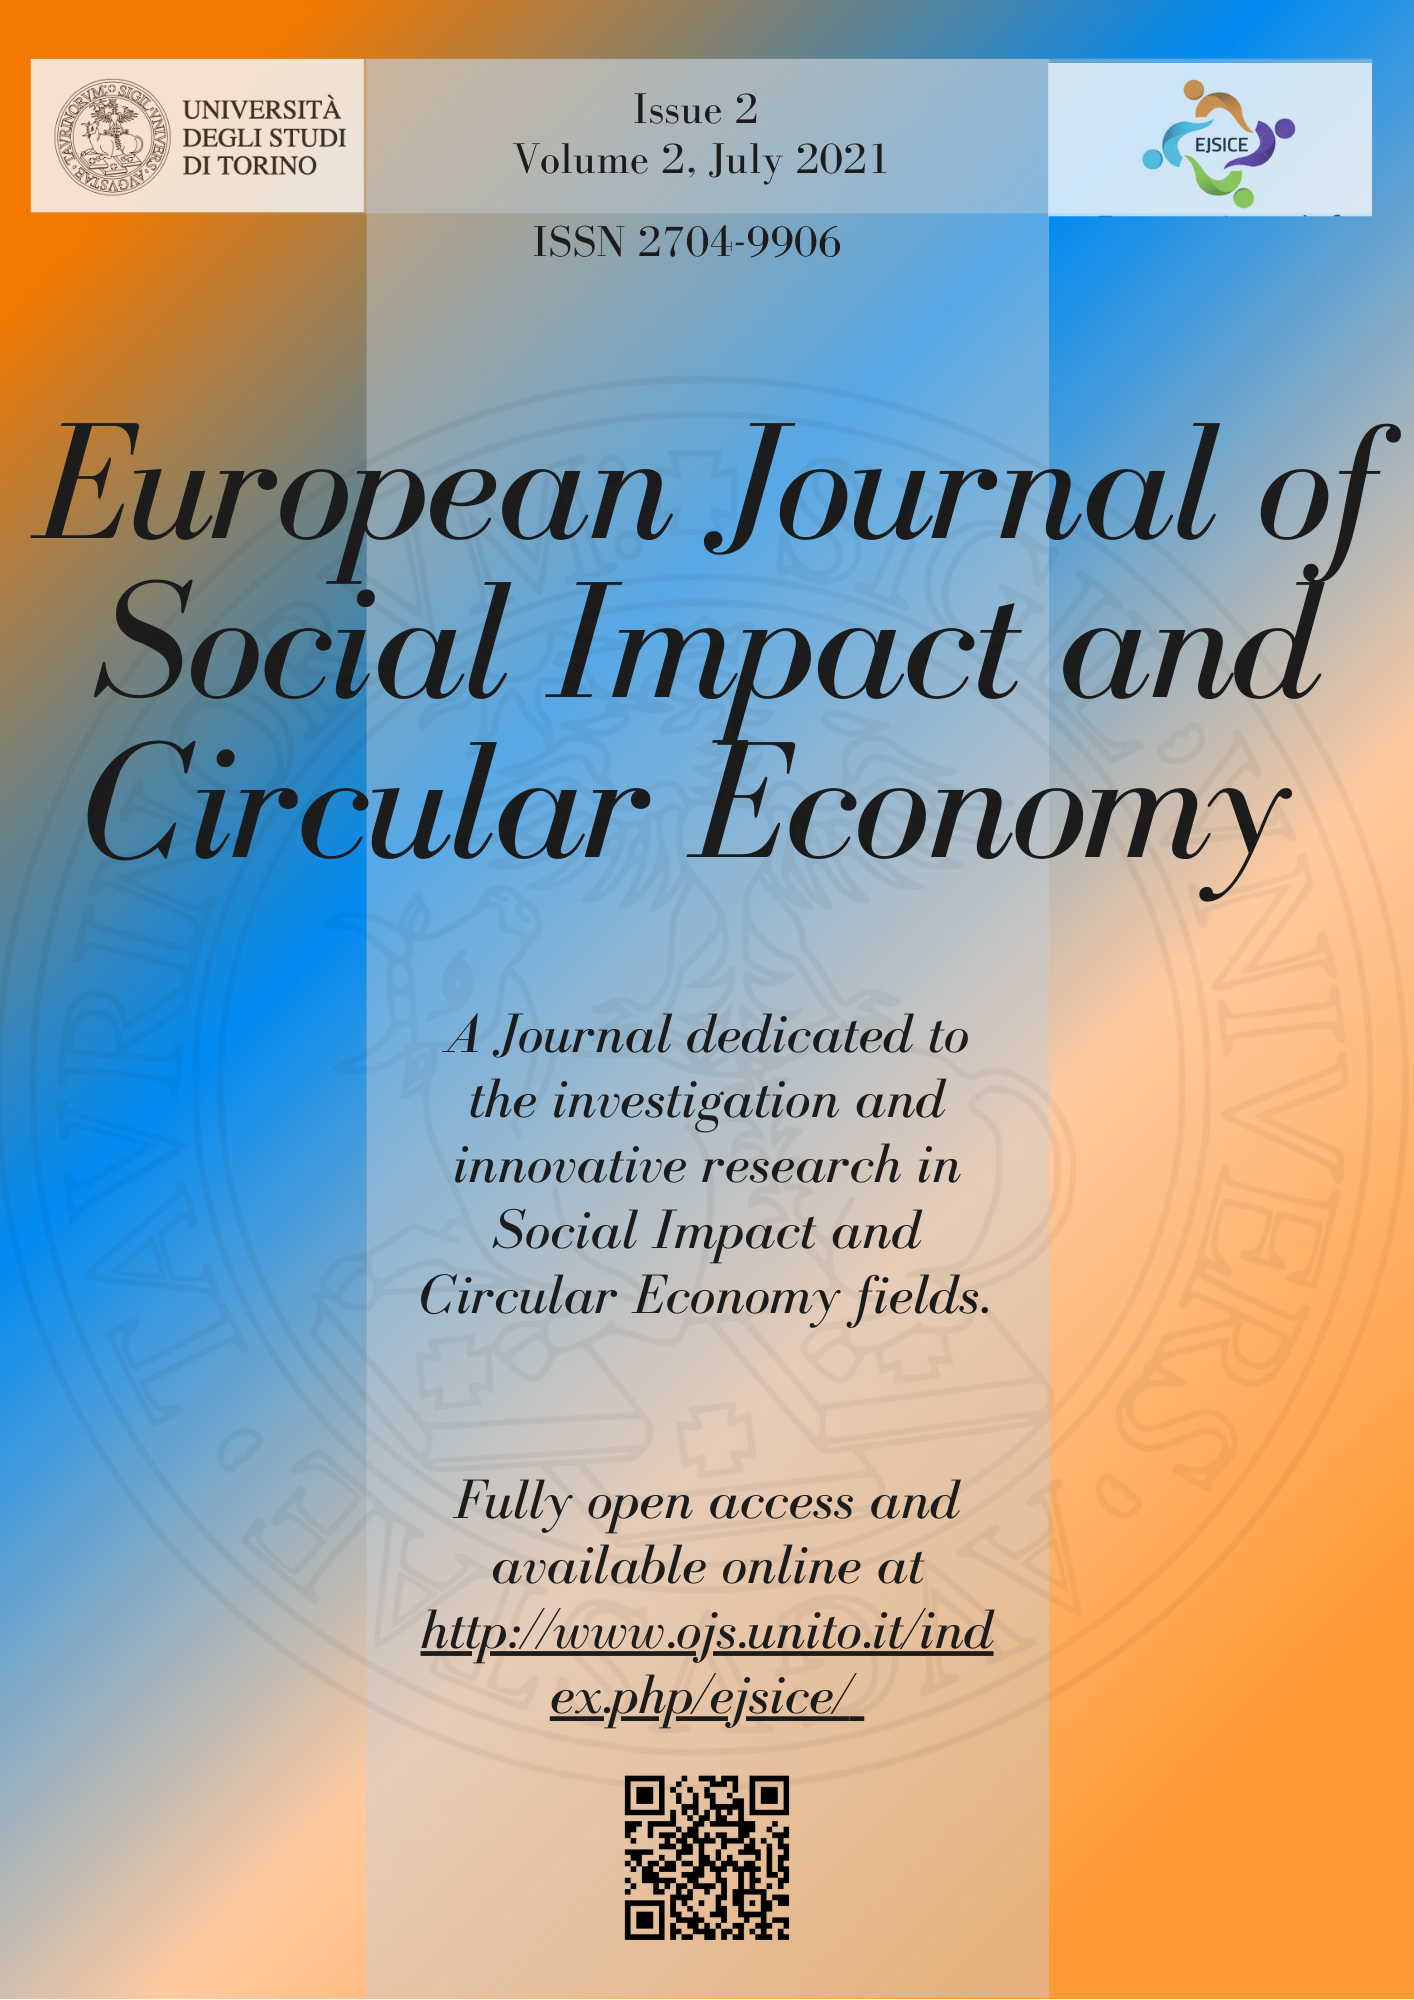 European Journal of Social Impact and Circular Economy Volume 2 Issue 2 Year 2021